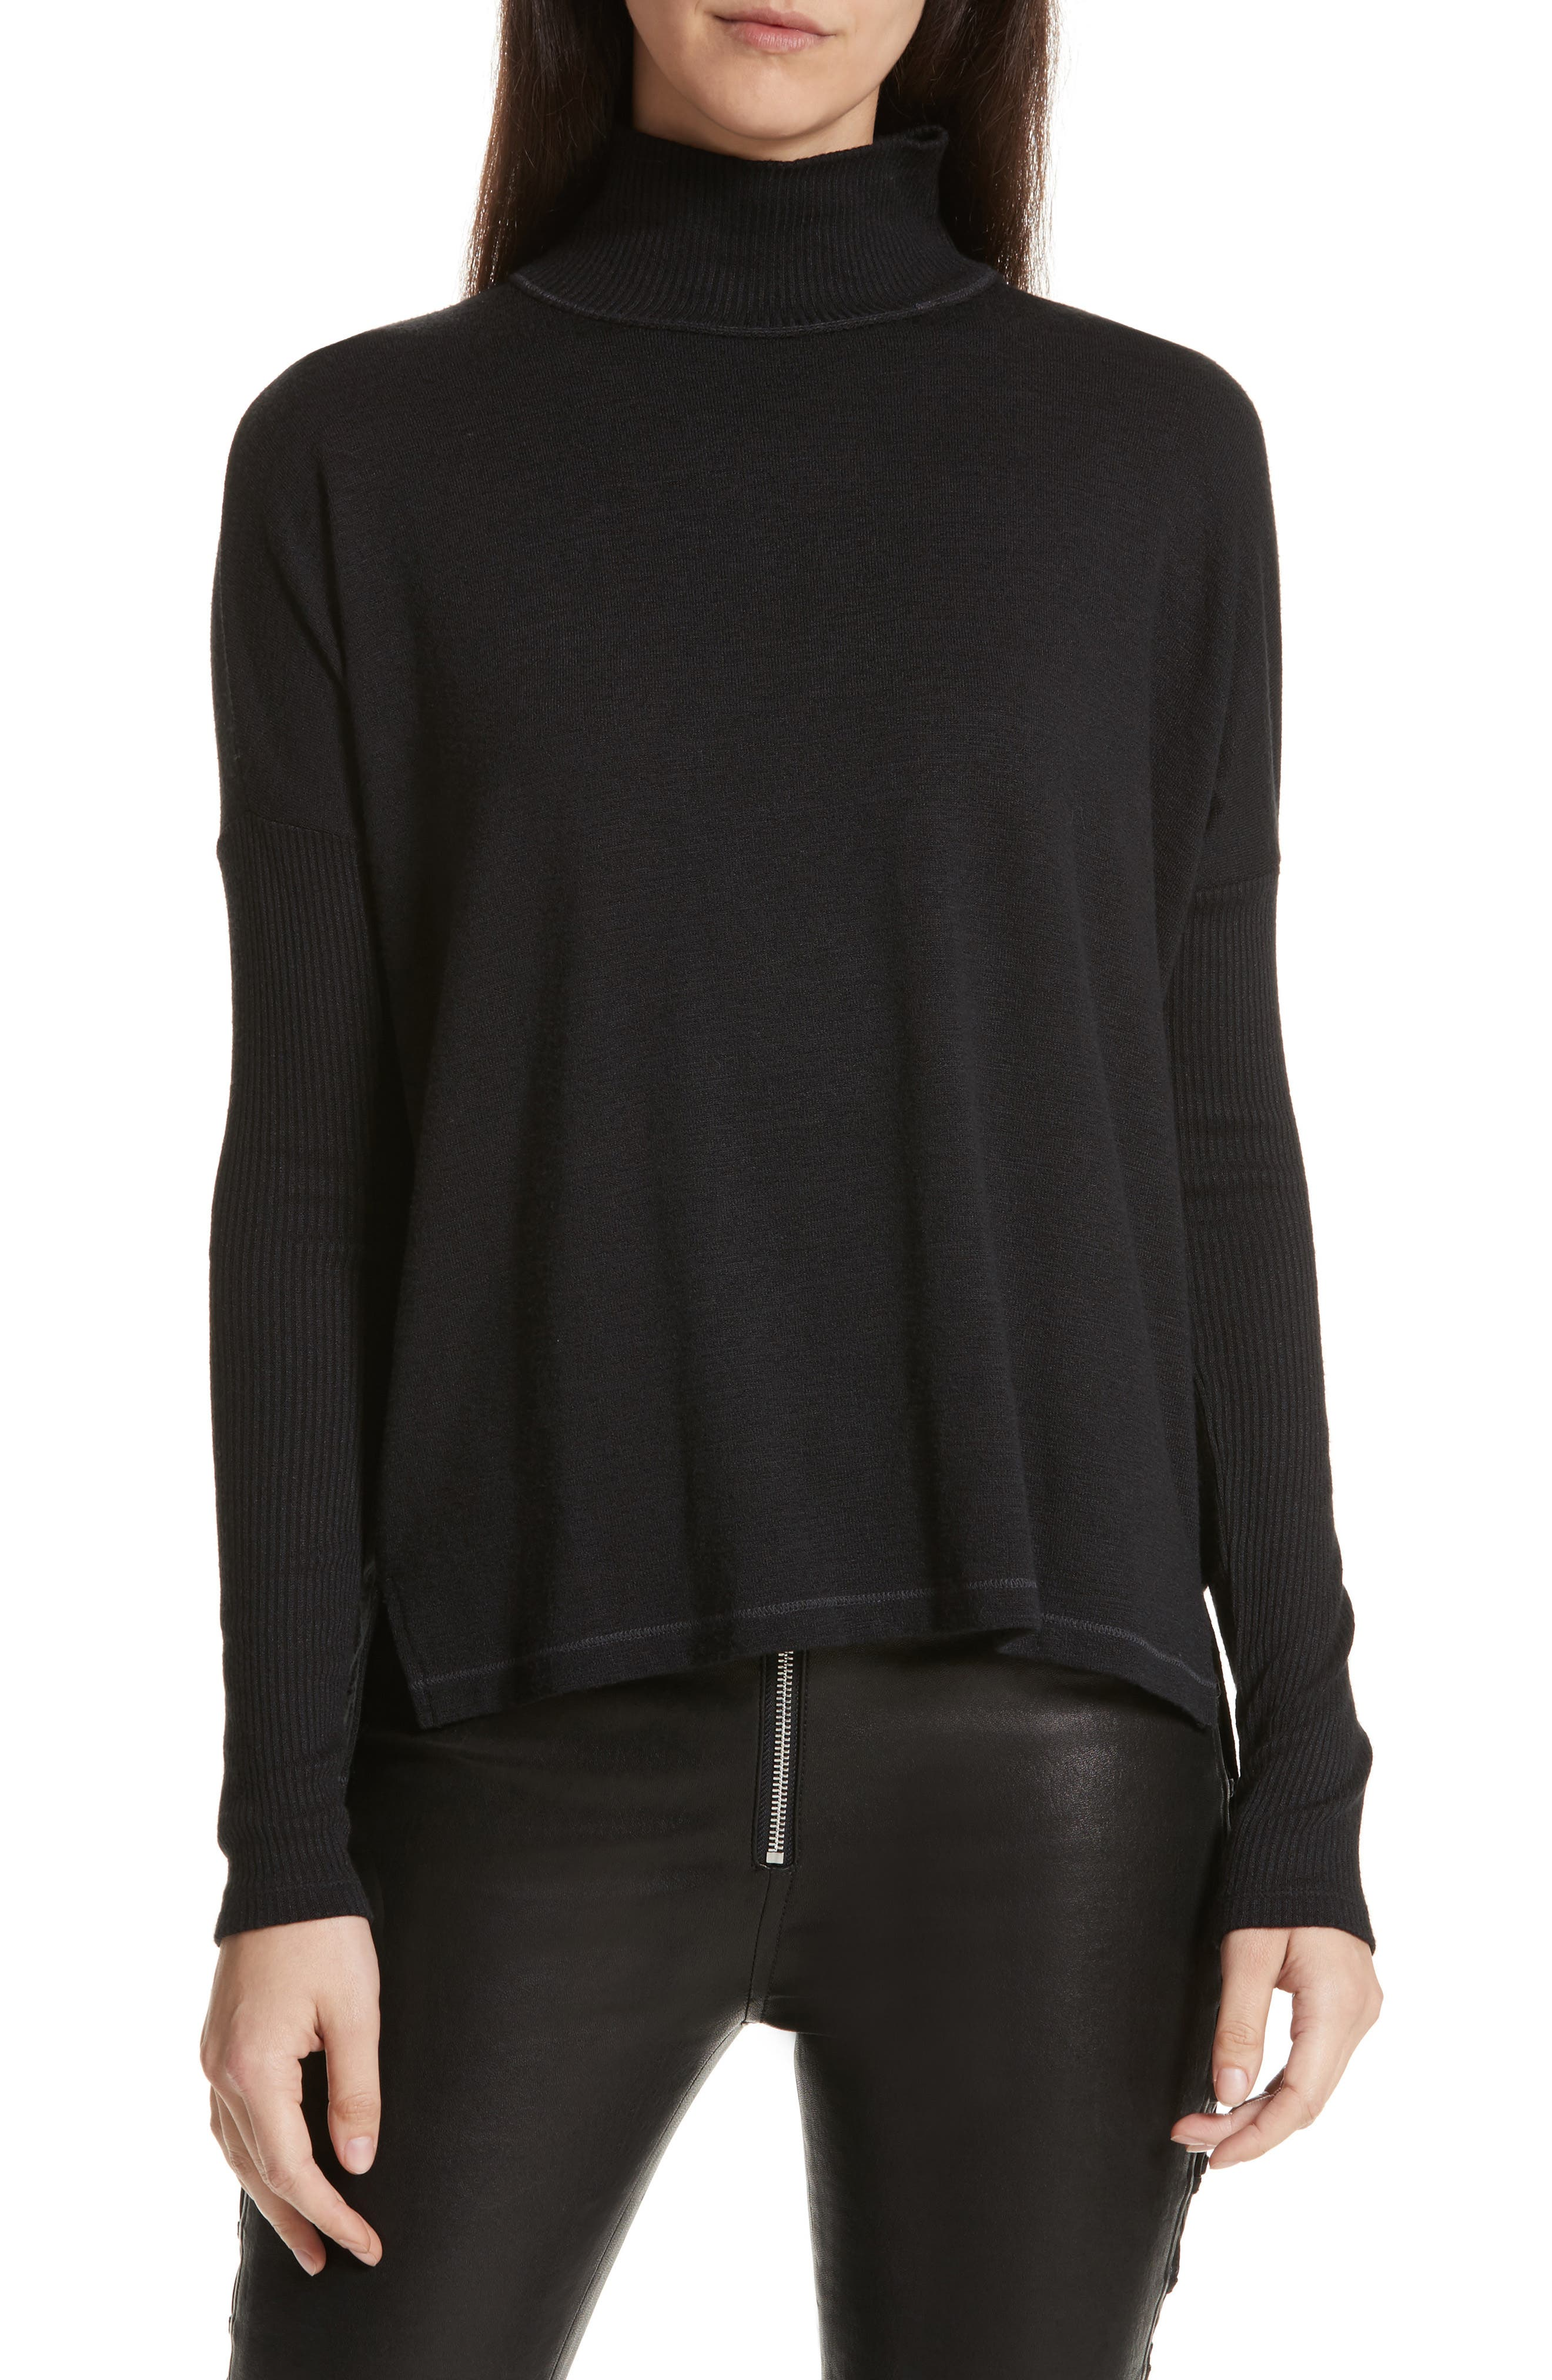 JEAN Amelie Back Cutout Turtleneck,                             Main thumbnail 1, color,                             001